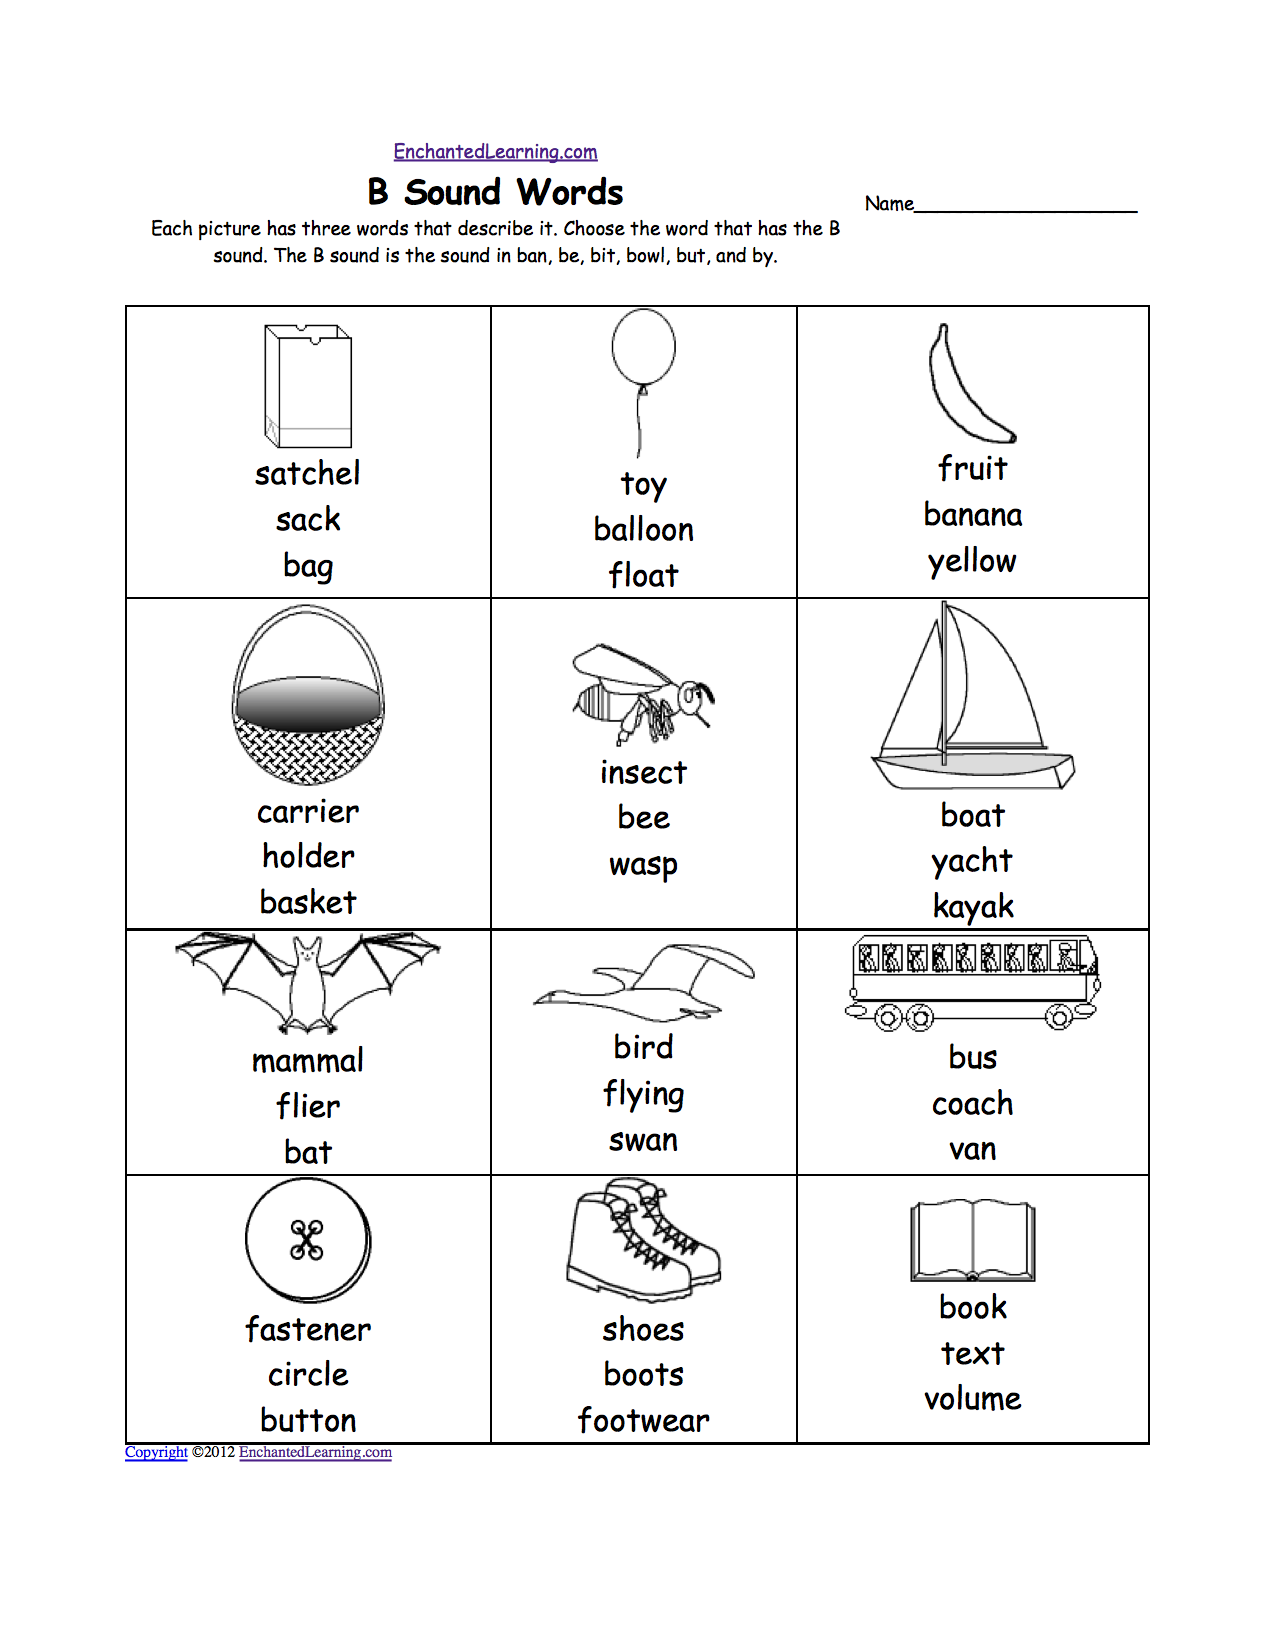 Weirdmailus  Seductive Phonics Worksheets Multiple Choice Worksheets To Print  With Exciting Quotbquot Sound Phonics Worksheet Multiple Choice Each Picture Has Three Words That Describe It Choose The Word That Has A Quotbquot Sound The Quotbquot Sound Is The Sound  With Extraordinary Easy Addition Worksheet Also Native Americans Worksheet In Addition Free Printable Reading Worksheets For Kindergarten And St Grade Math Worksheets Subtraction As Well As Mental Math Addition Worksheets Additionally Math Worksheets For First Grade Addition And Subtraction From Enchantedlearningcom With Weirdmailus  Exciting Phonics Worksheets Multiple Choice Worksheets To Print  With Extraordinary Quotbquot Sound Phonics Worksheet Multiple Choice Each Picture Has Three Words That Describe It Choose The Word That Has A Quotbquot Sound The Quotbquot Sound Is The Sound  And Seductive Easy Addition Worksheet Also Native Americans Worksheet In Addition Free Printable Reading Worksheets For Kindergarten From Enchantedlearningcom